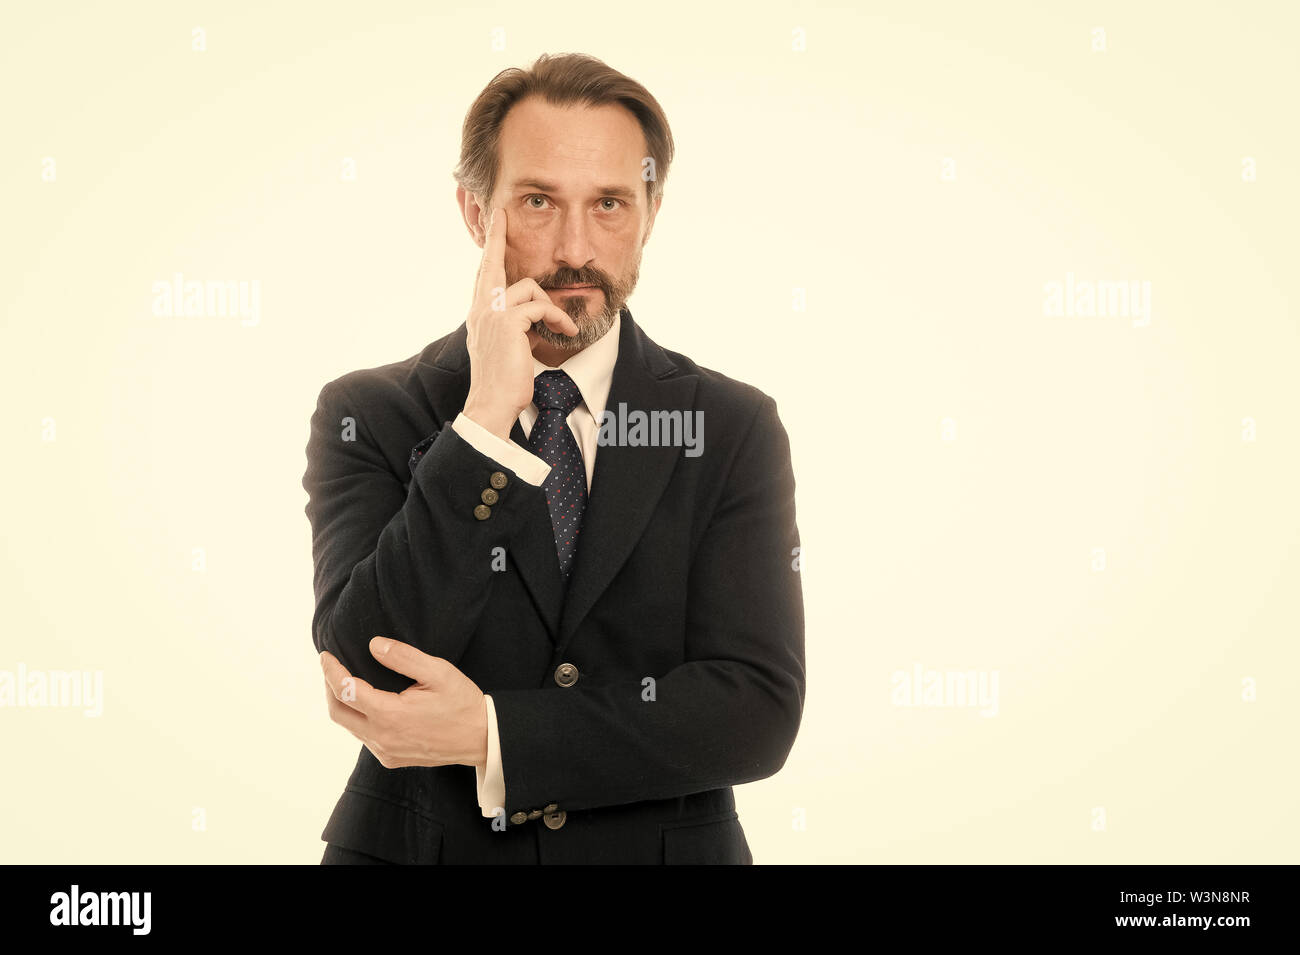 Perfect suit for every type of guy. Bespoke suit flatters every wearer. Suit imbue sense of confidence of gentlemen. Man handsome mature fashion model wear fashionable suit on white background. - Stock Image